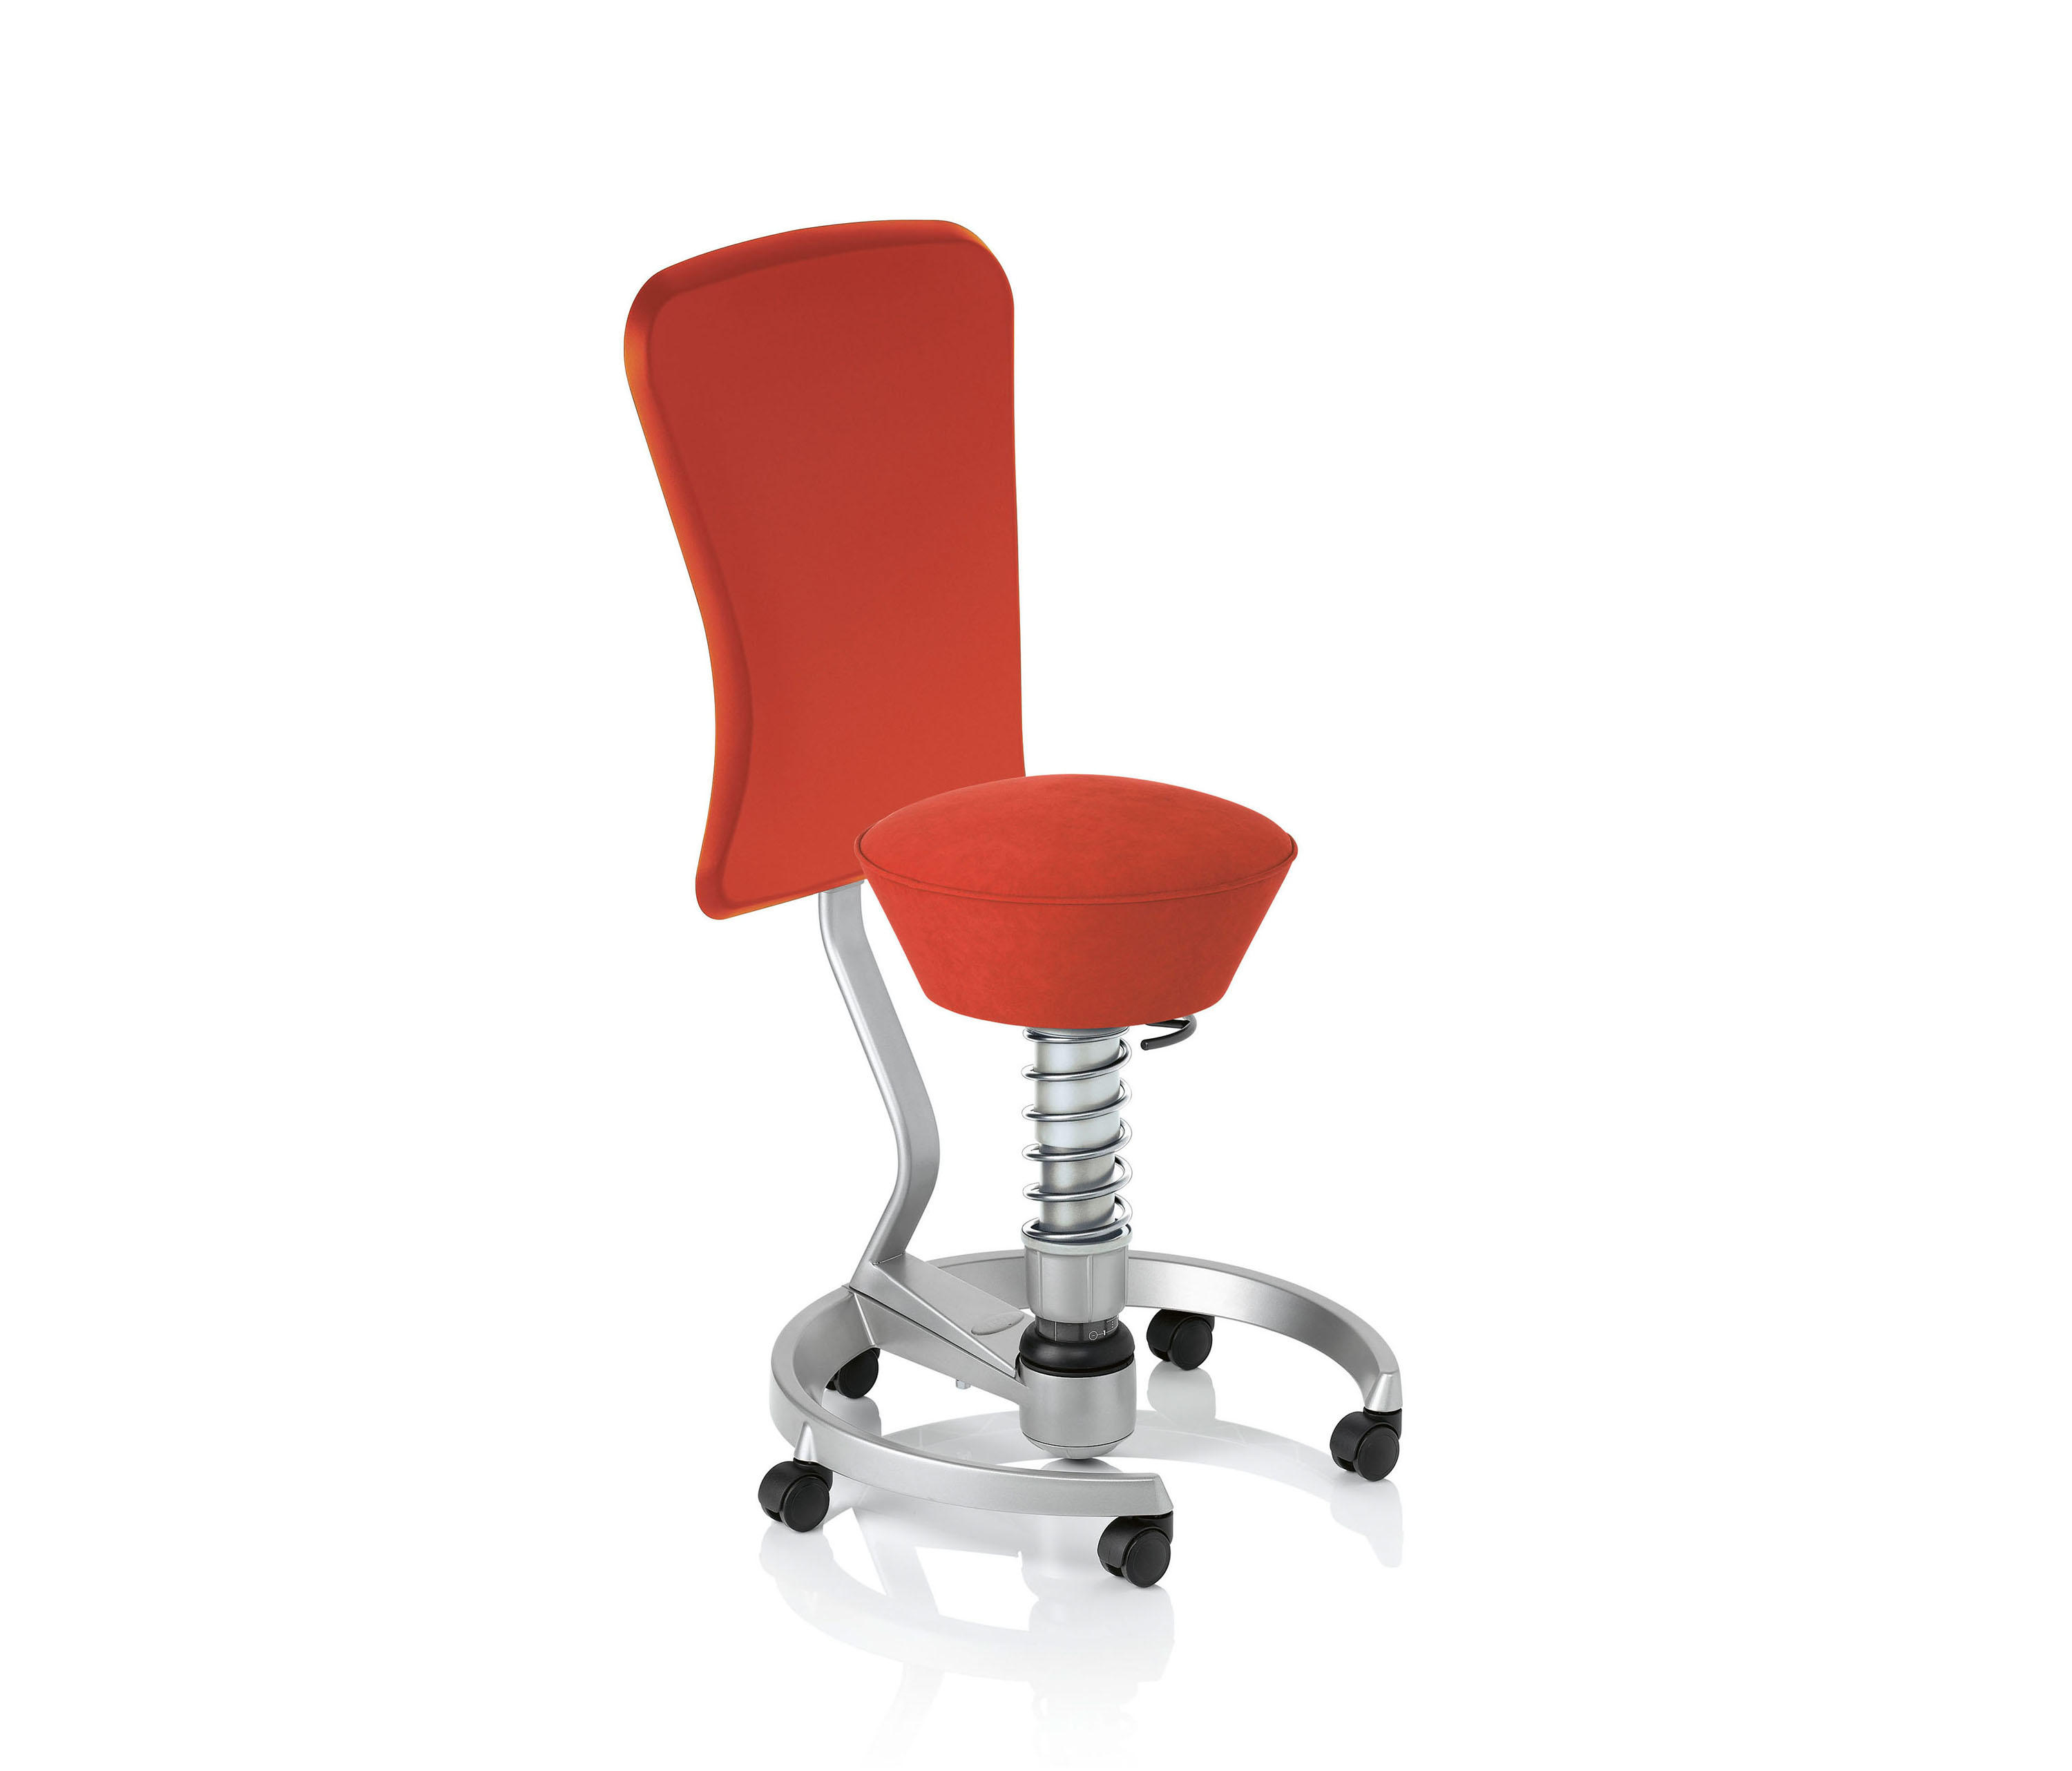 SWOPPER WORK Task chairs from aeris